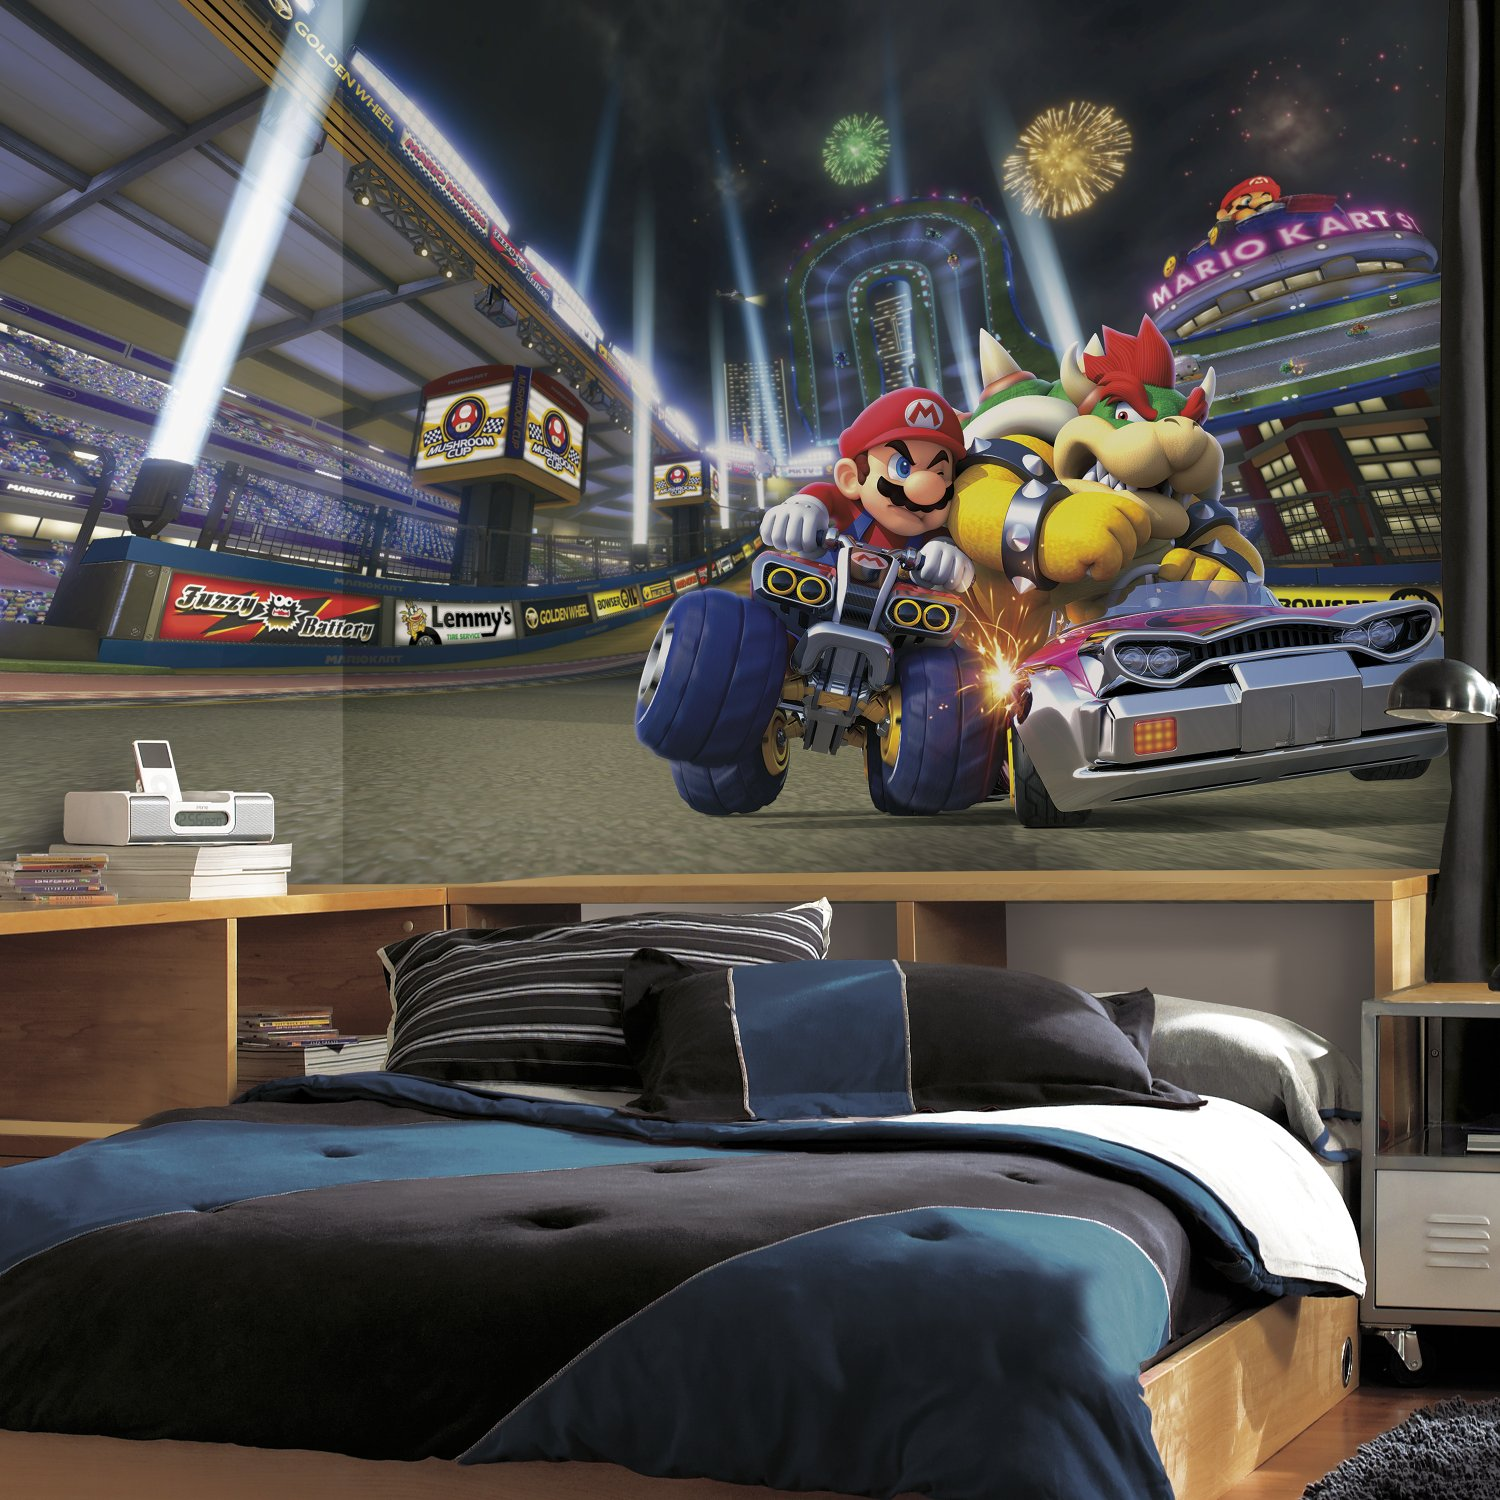 RoomMates Nintendo - Mario Kart 8 Prepasted, Removable Wall Mural - 6' X 10.5' by RoomMates (Image #1)